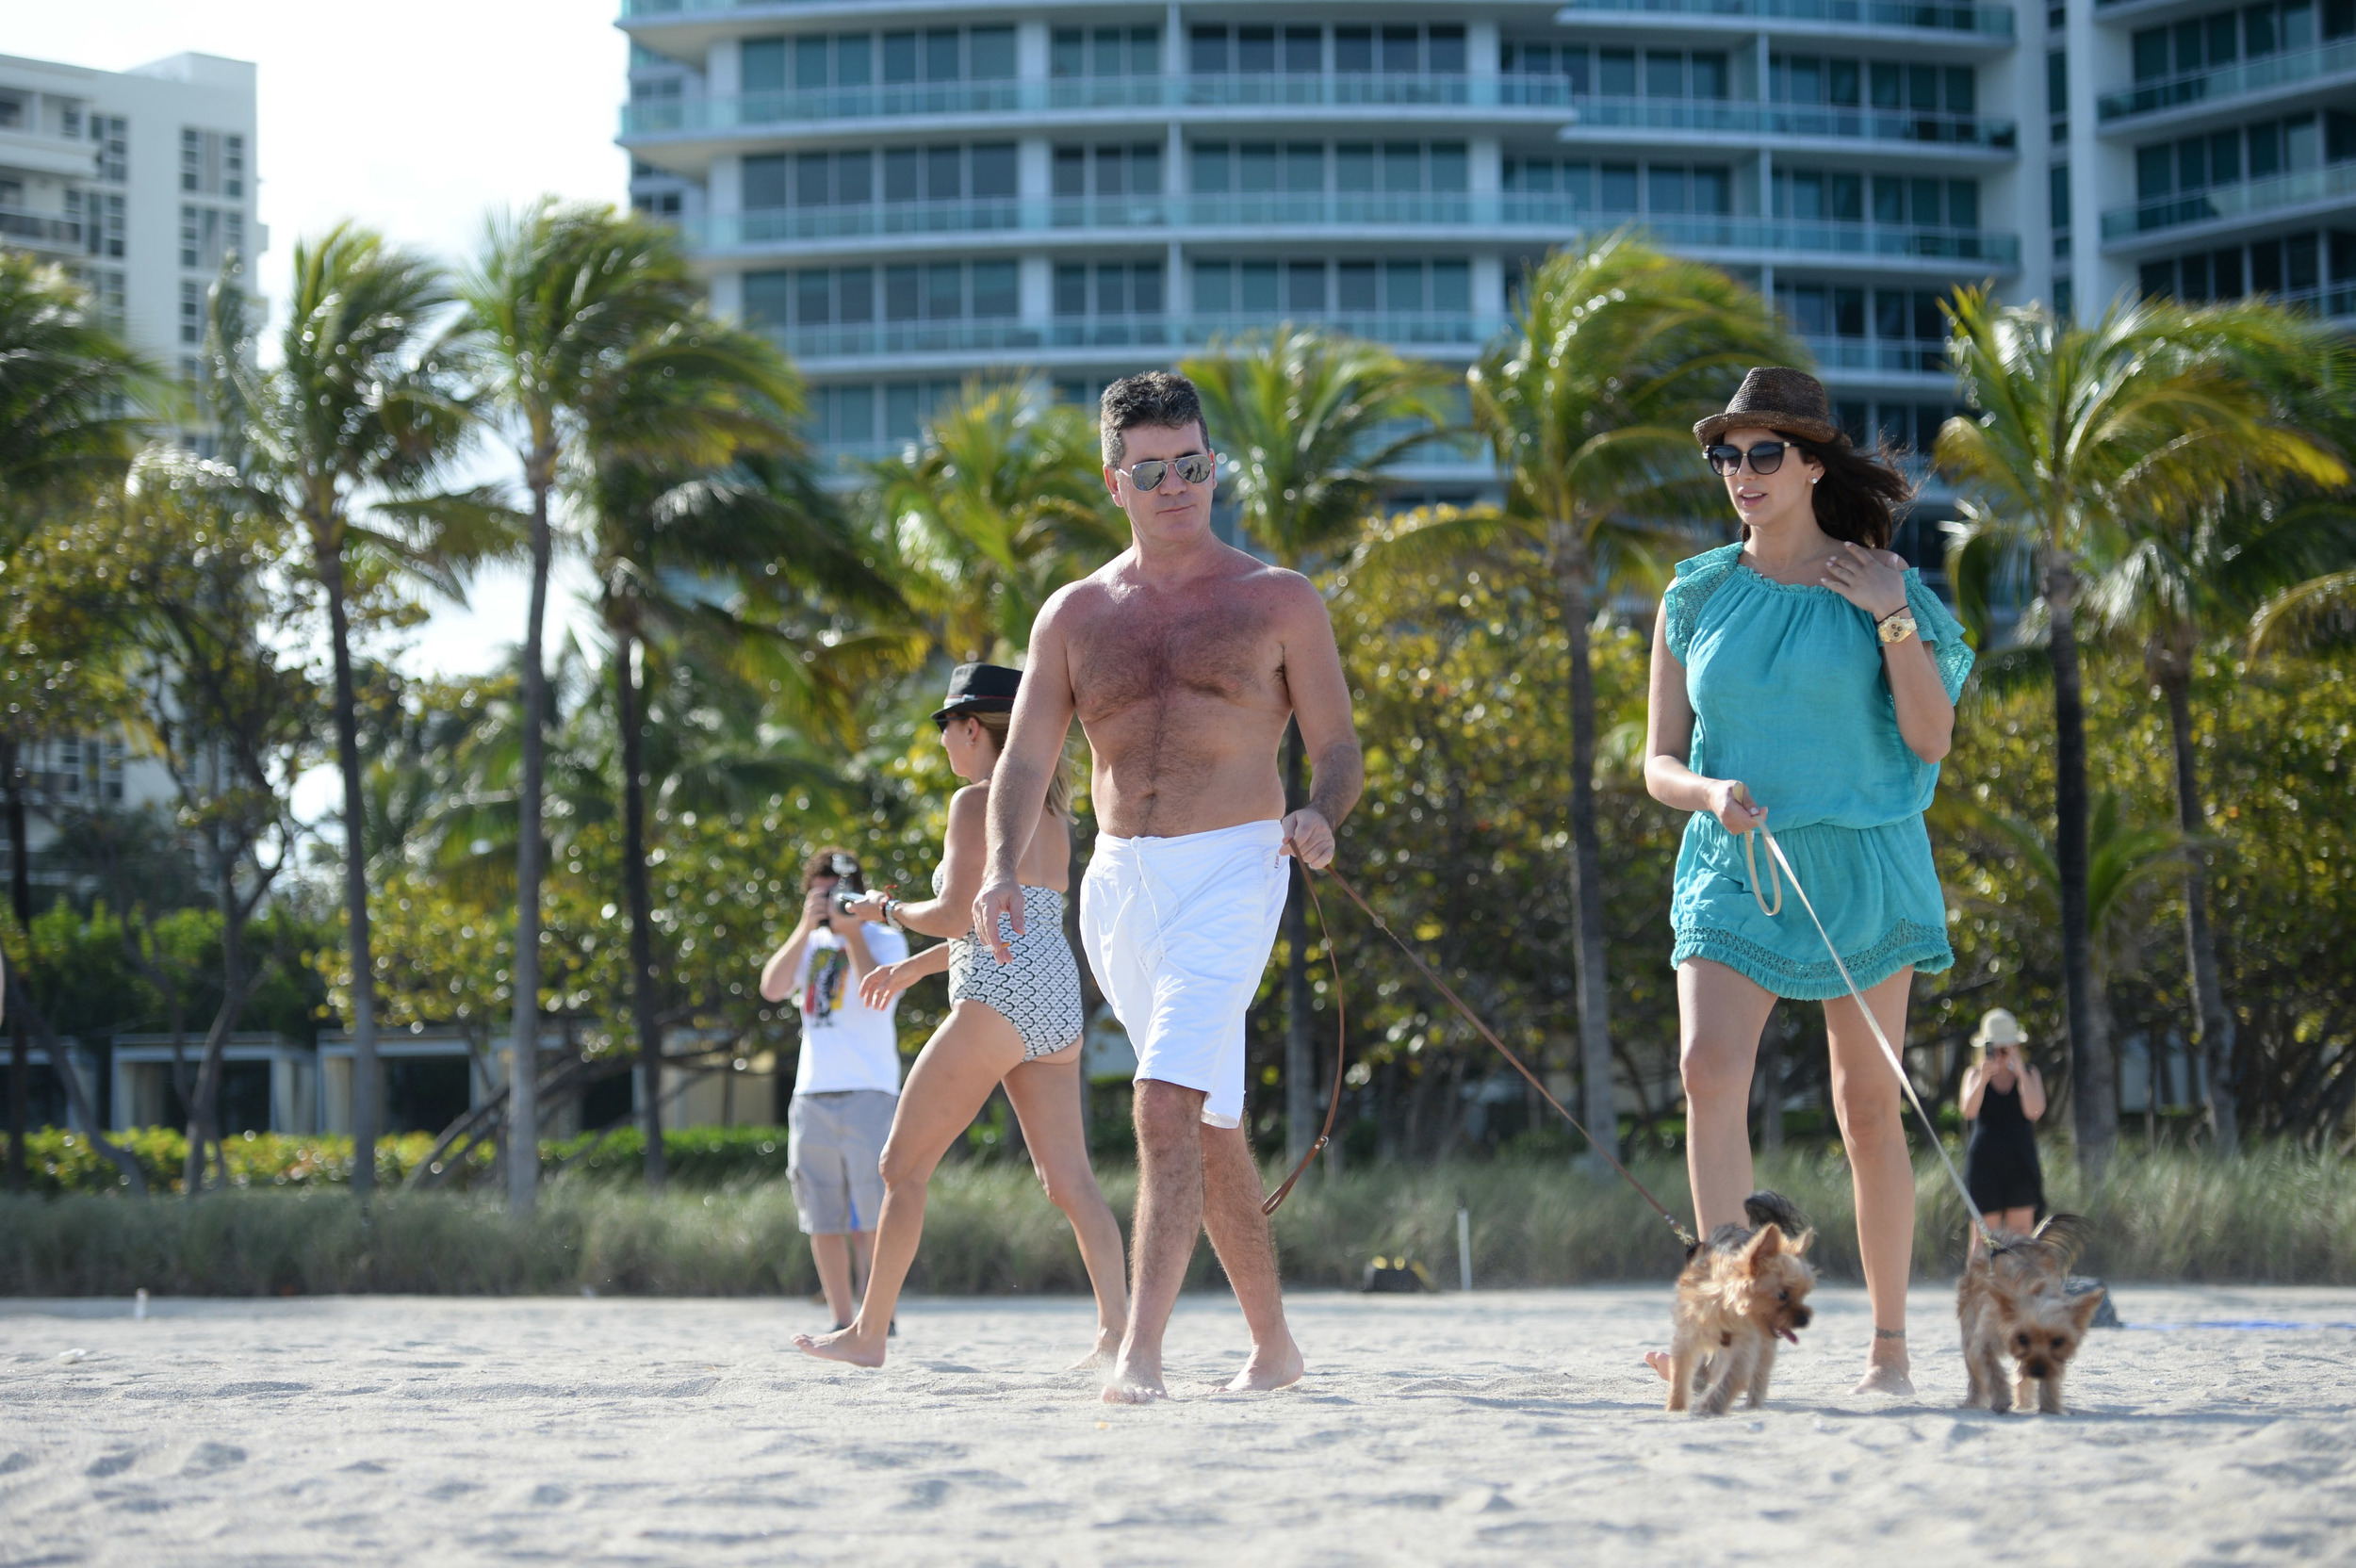 The Best Celebrity Spotting Places in Miami | Miami New Times